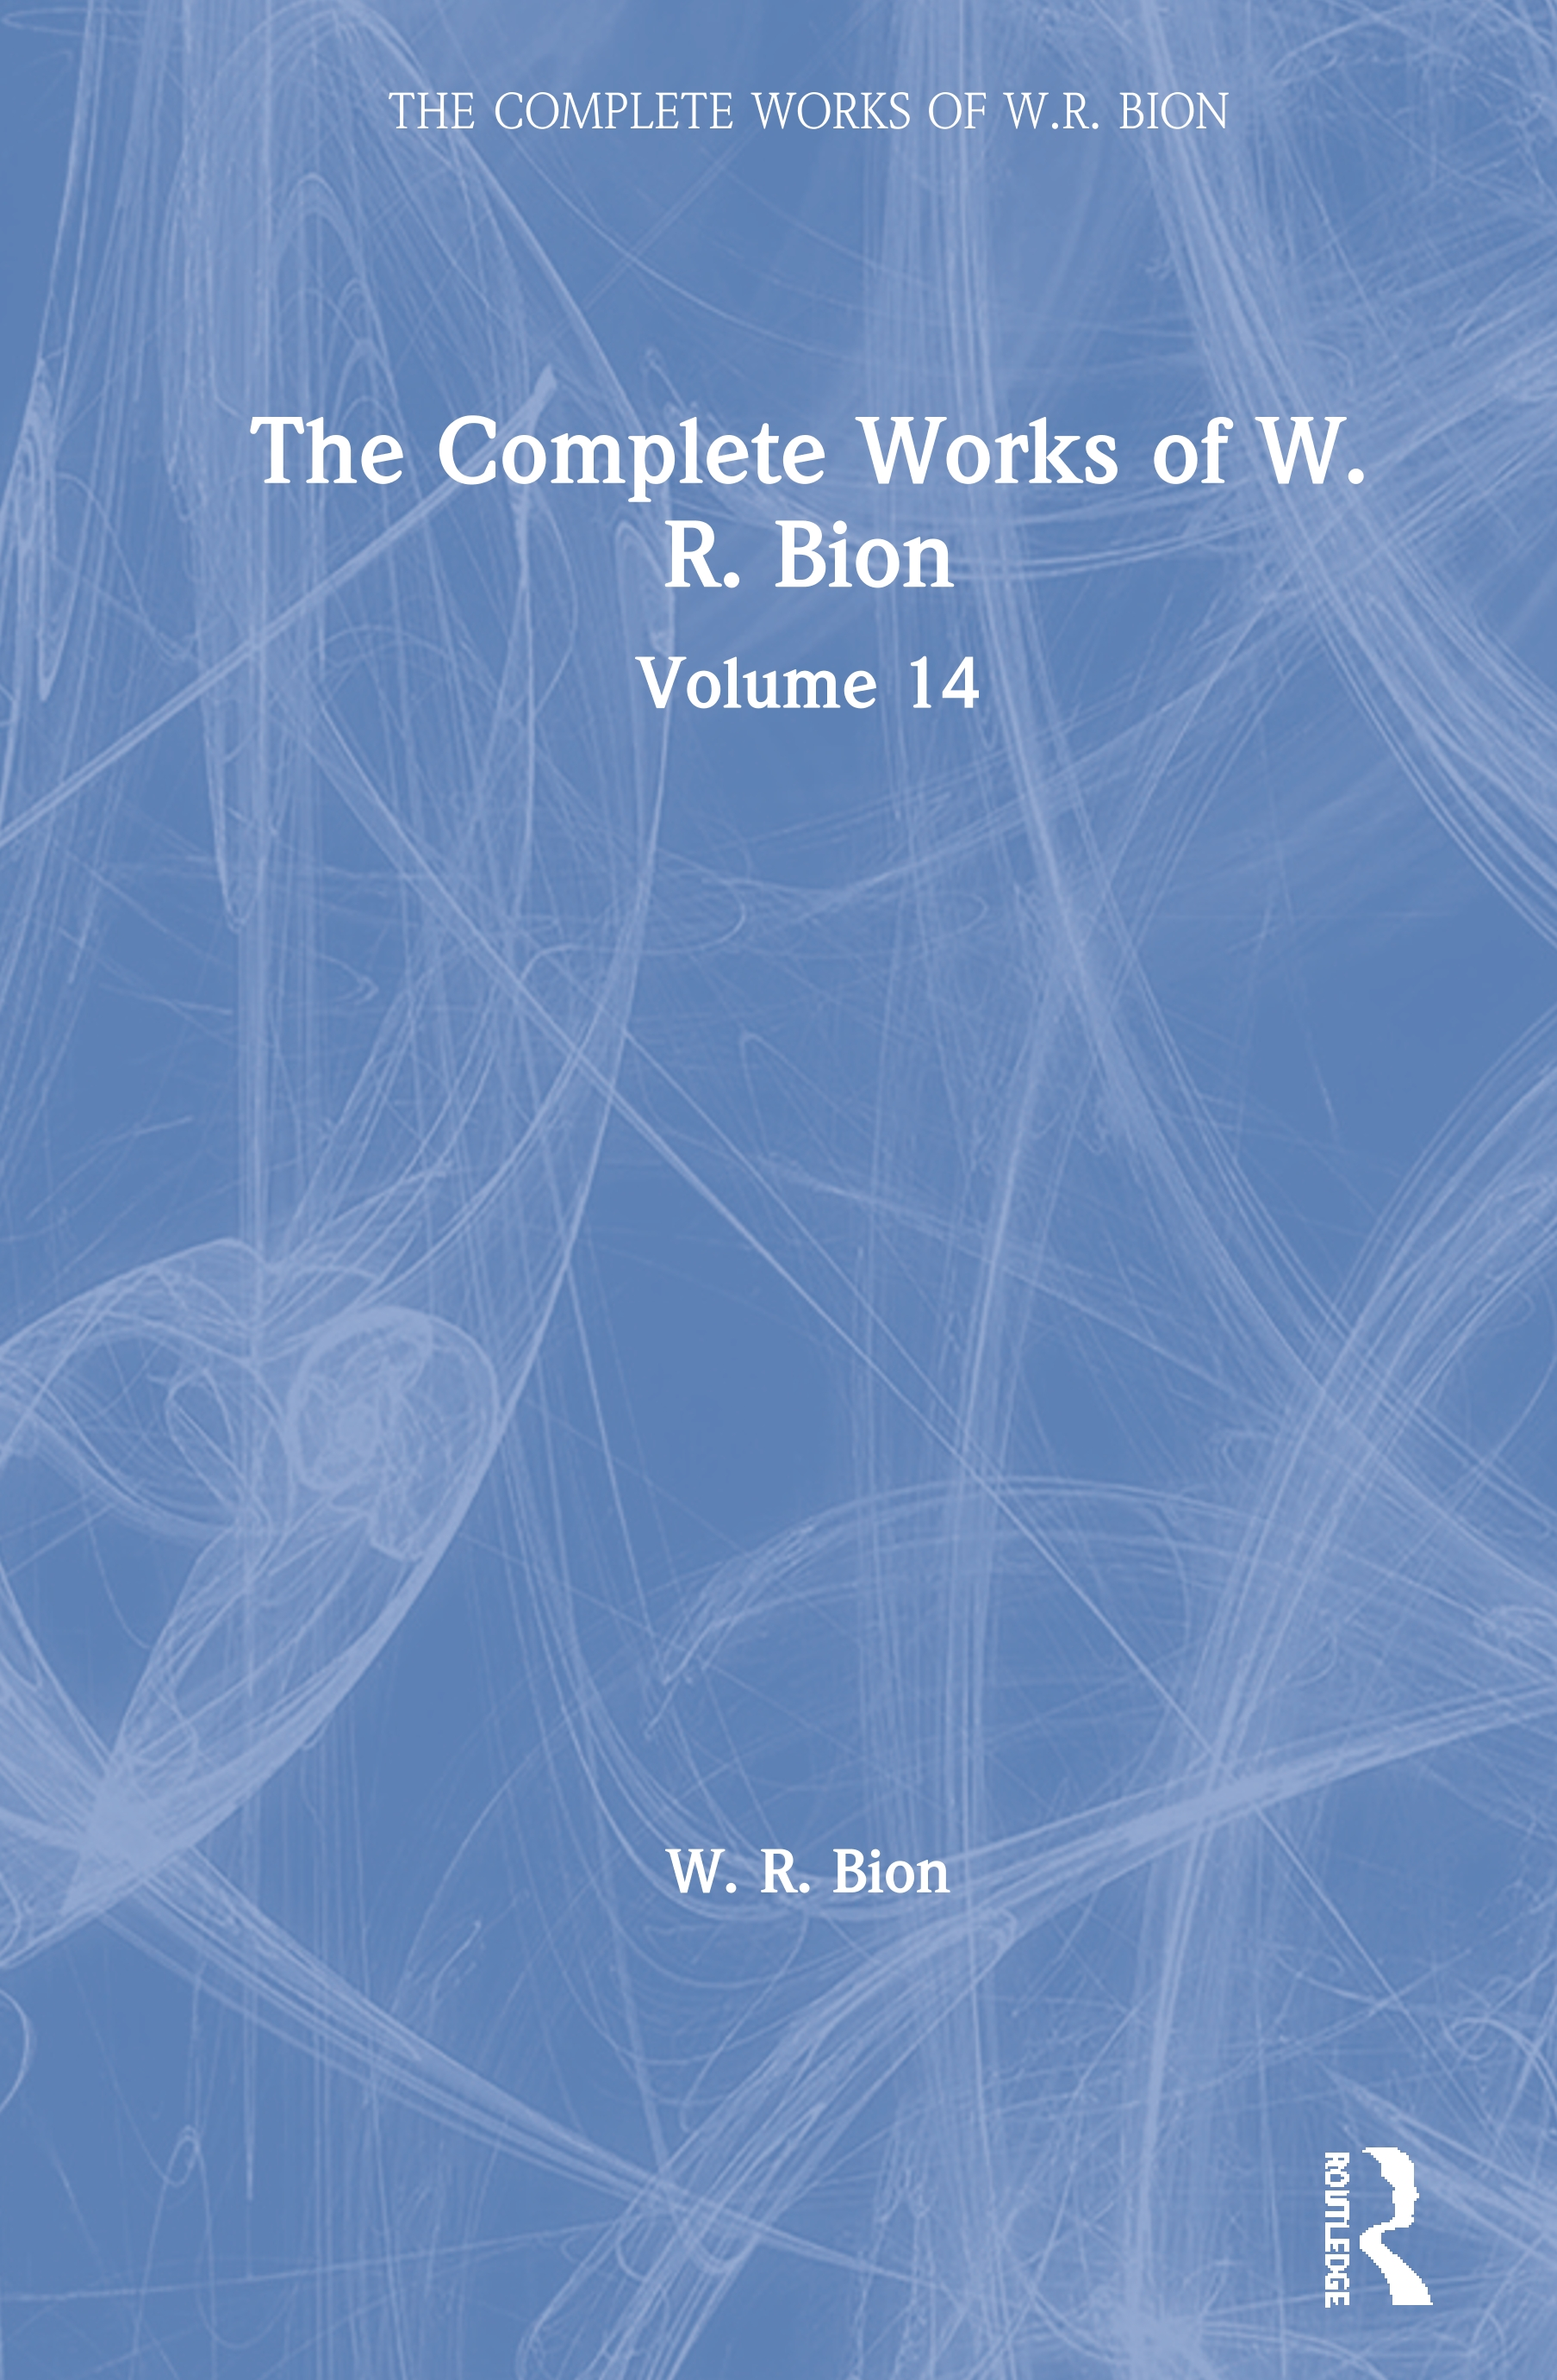 The Complete Works of W.R. Bion: Volume 14, 1st Edition (Hardback) book cover